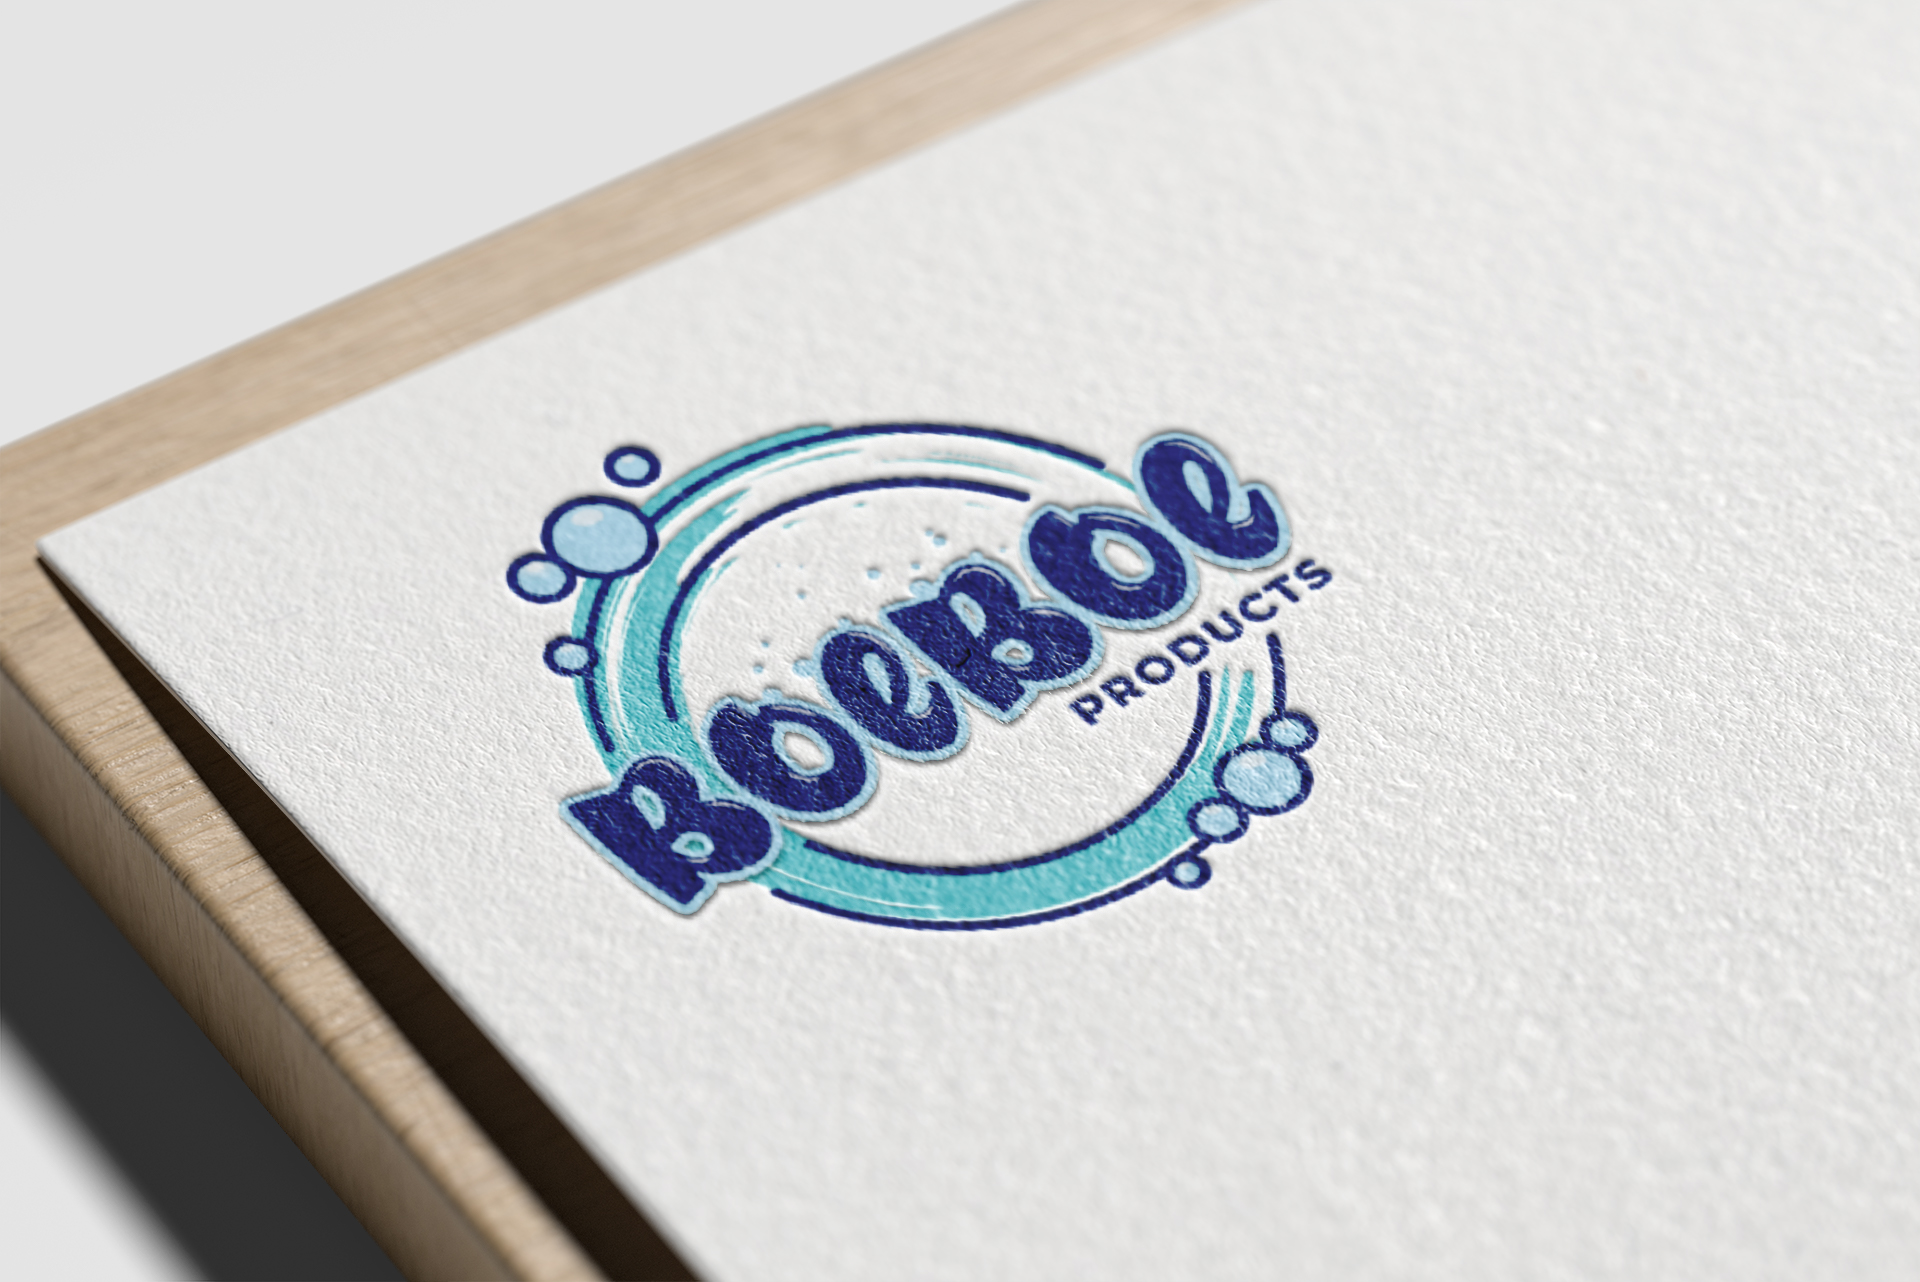 Boe Boe Bath Products Branding by WOW Creative Design Studio